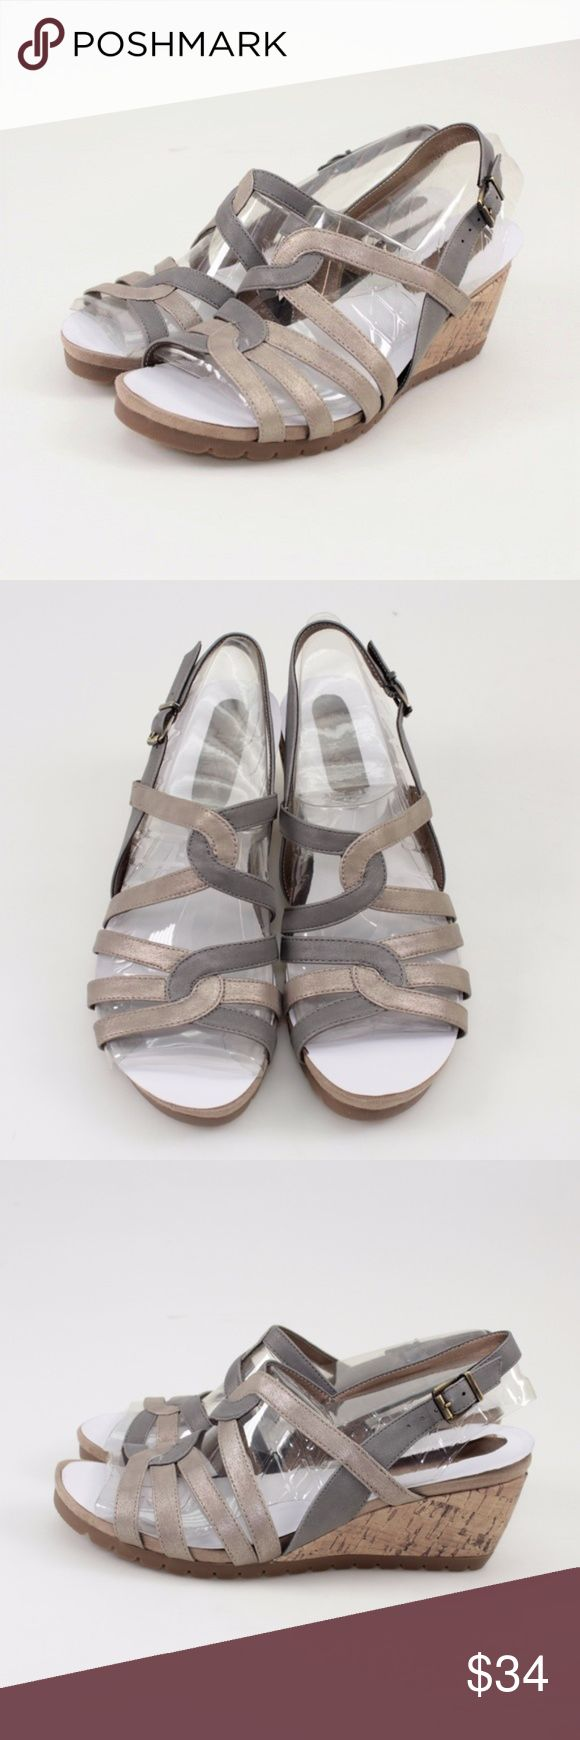 """LifeStride Novak Metallic Wedge Sandals // 10 WIDE These adorable sandals flaunt flirty slingback styling atop a cork-patterned wedge. Synthetic upper Fabric lining Padded footbed Open toe design Buckle Closure Wedge height approx. 2""""  Photos show all details, so look over thoroughly.  Brand new in the original box! #18TW34 // LifeStride // Novak // Casual // Sandal // Wedge //Metallic Champagne LifeStride Shoes Sandals"""